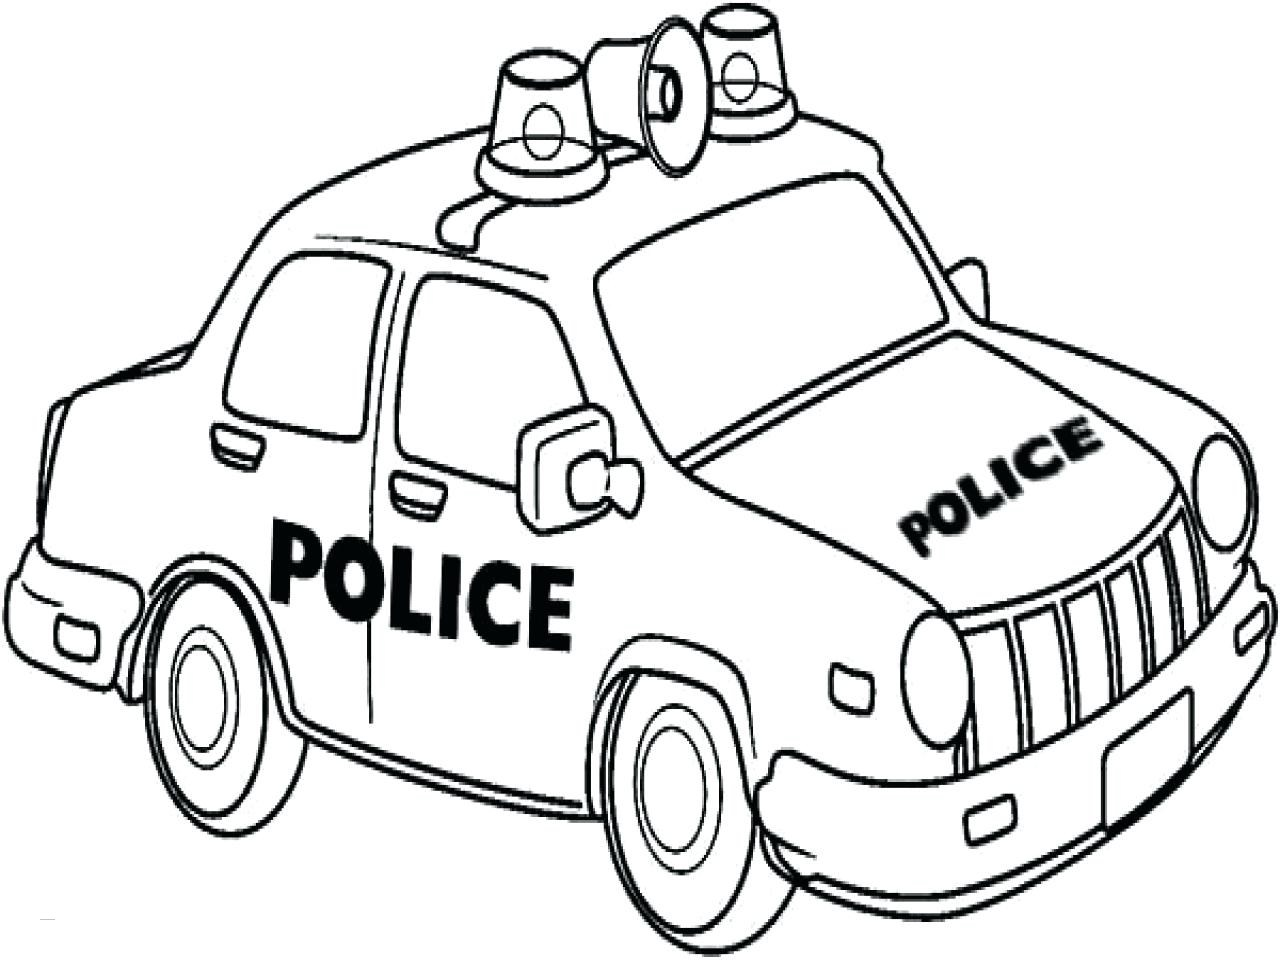 1280x960 Vehicle Accident Report Diagram Free Download Coloring Pages Line